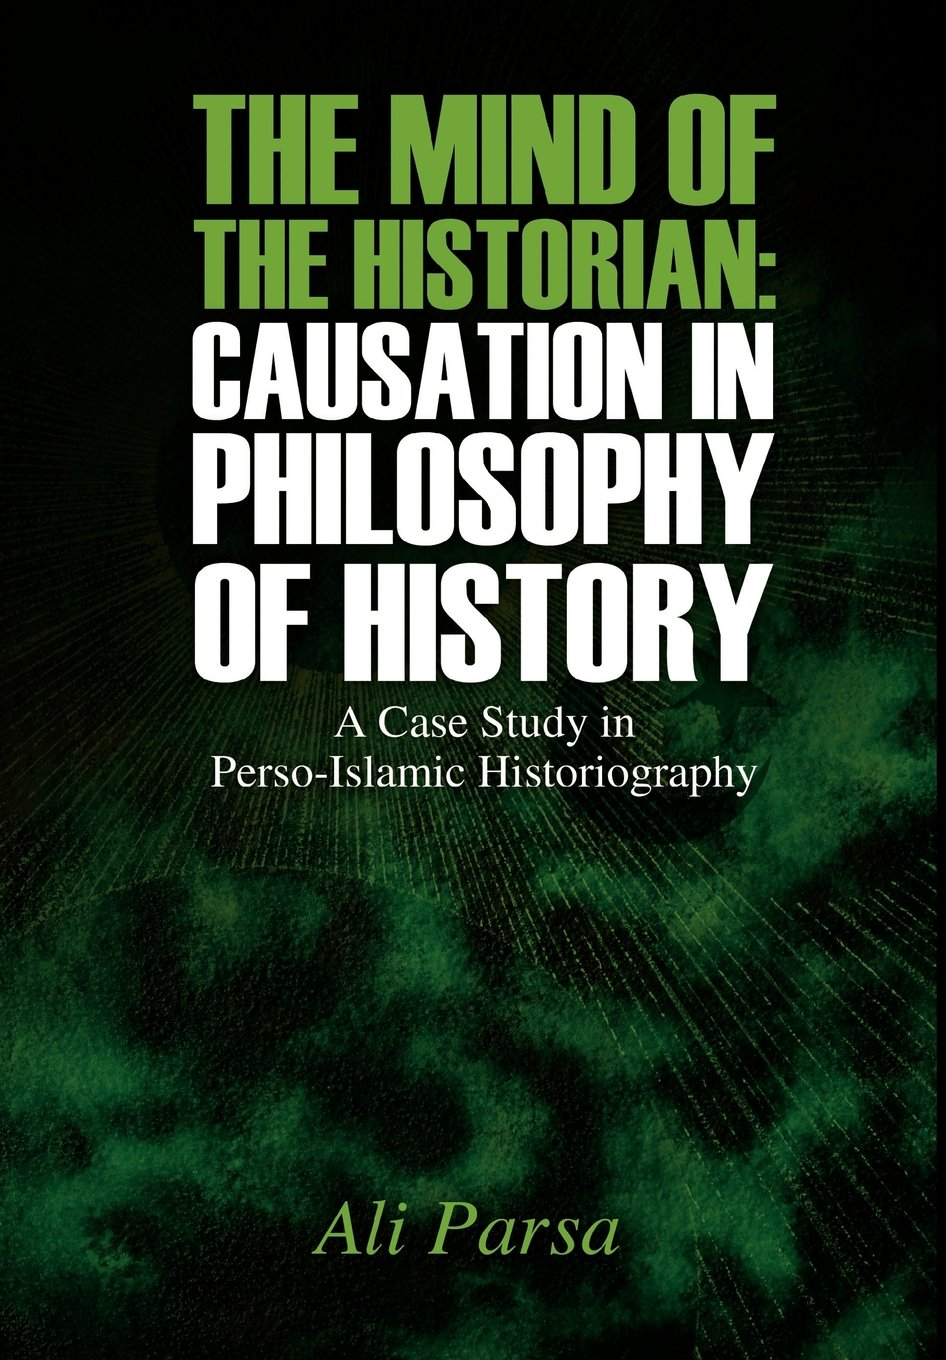 The Mind of the Historian: Causation in Philosophy of History: A Case Study in Perso-Islamic Historiography ebook